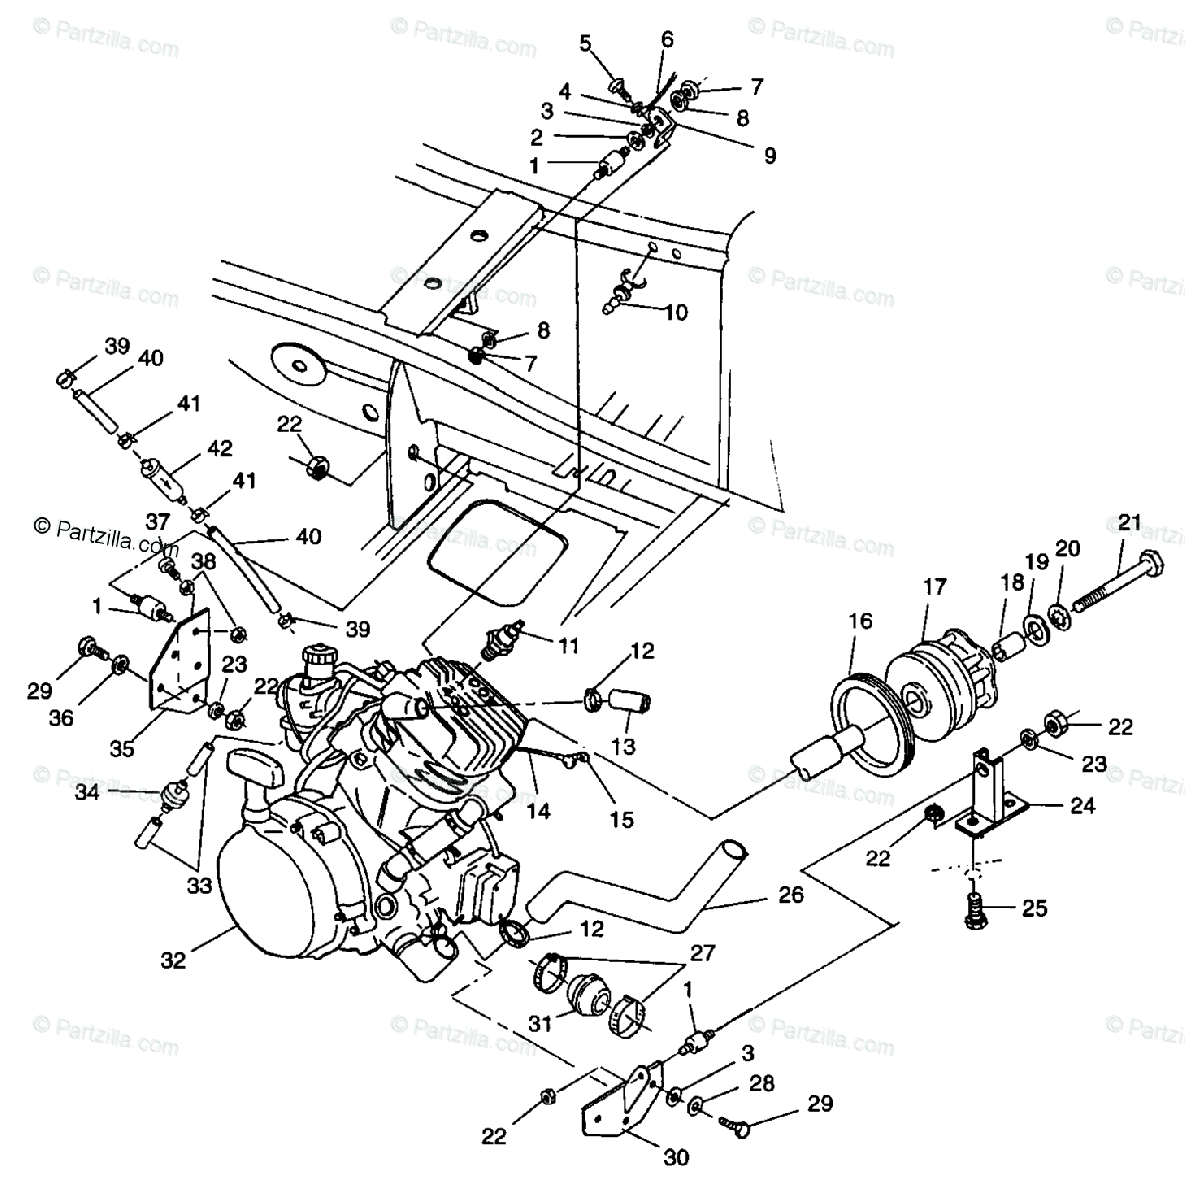 Polaris Scrambler 400 Engine Diagram